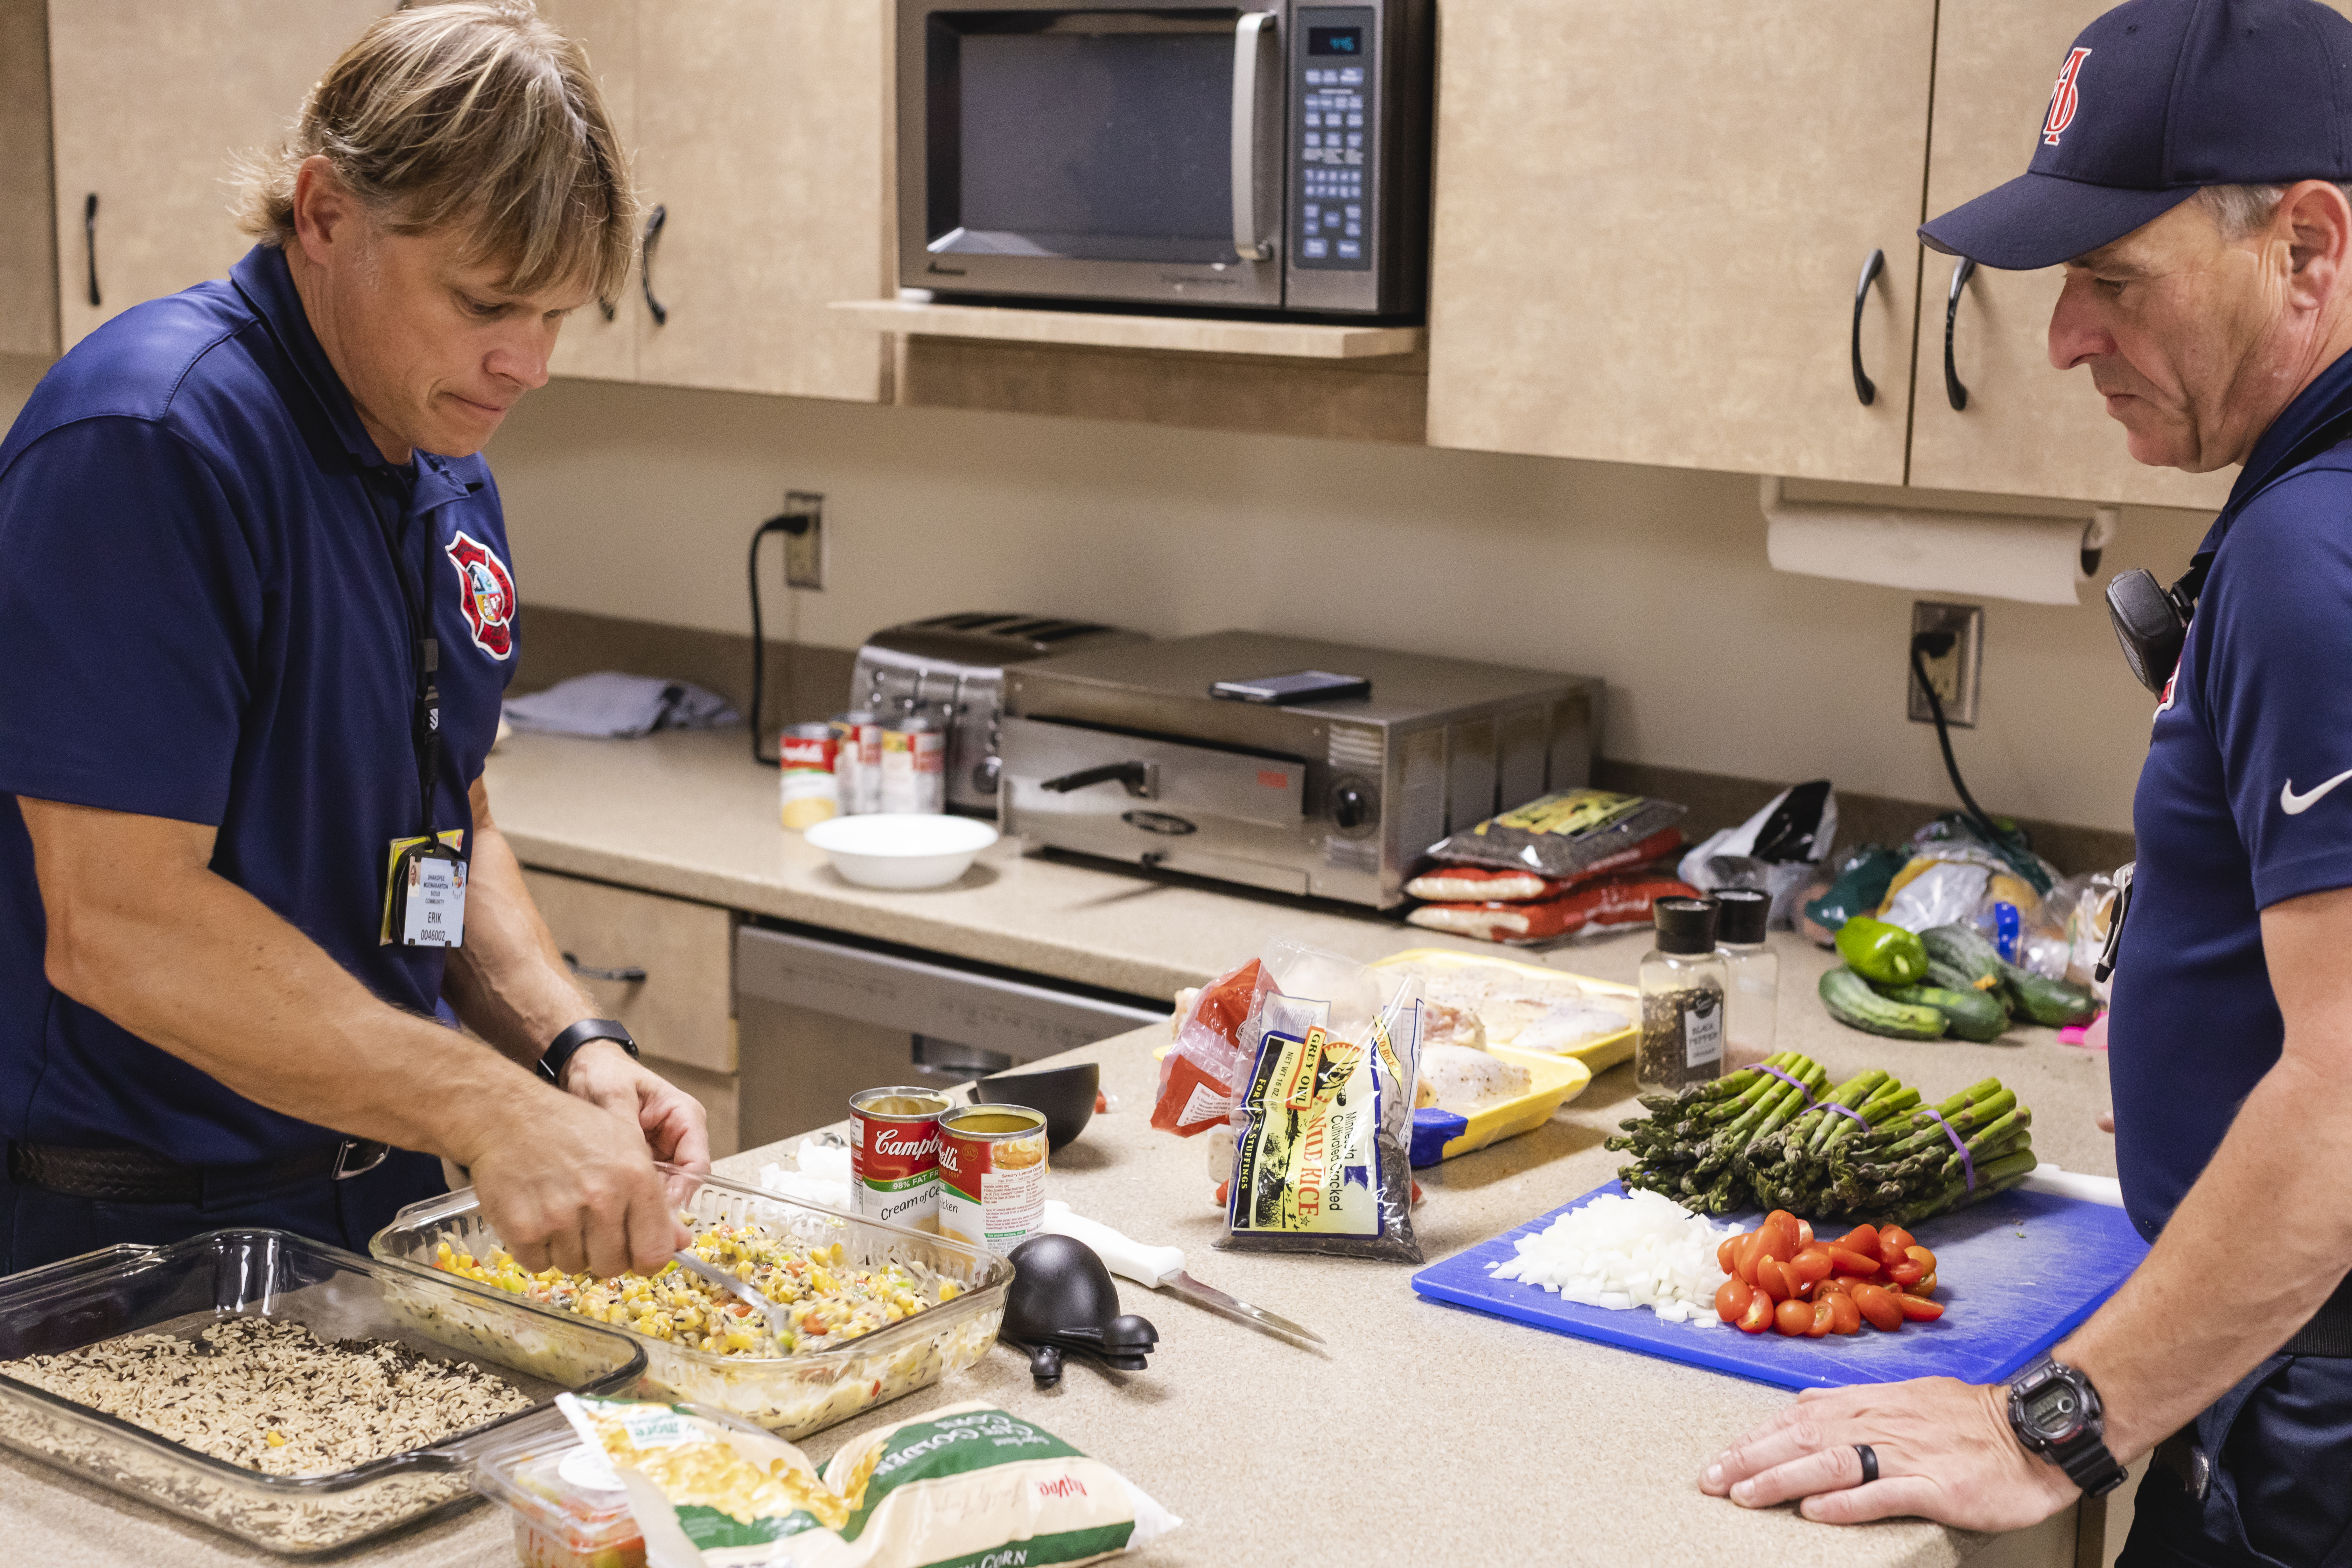 Firefighters at Mdewakanton Fire Department in Shakopee prepping a hot meal // Photo by Garrett Born